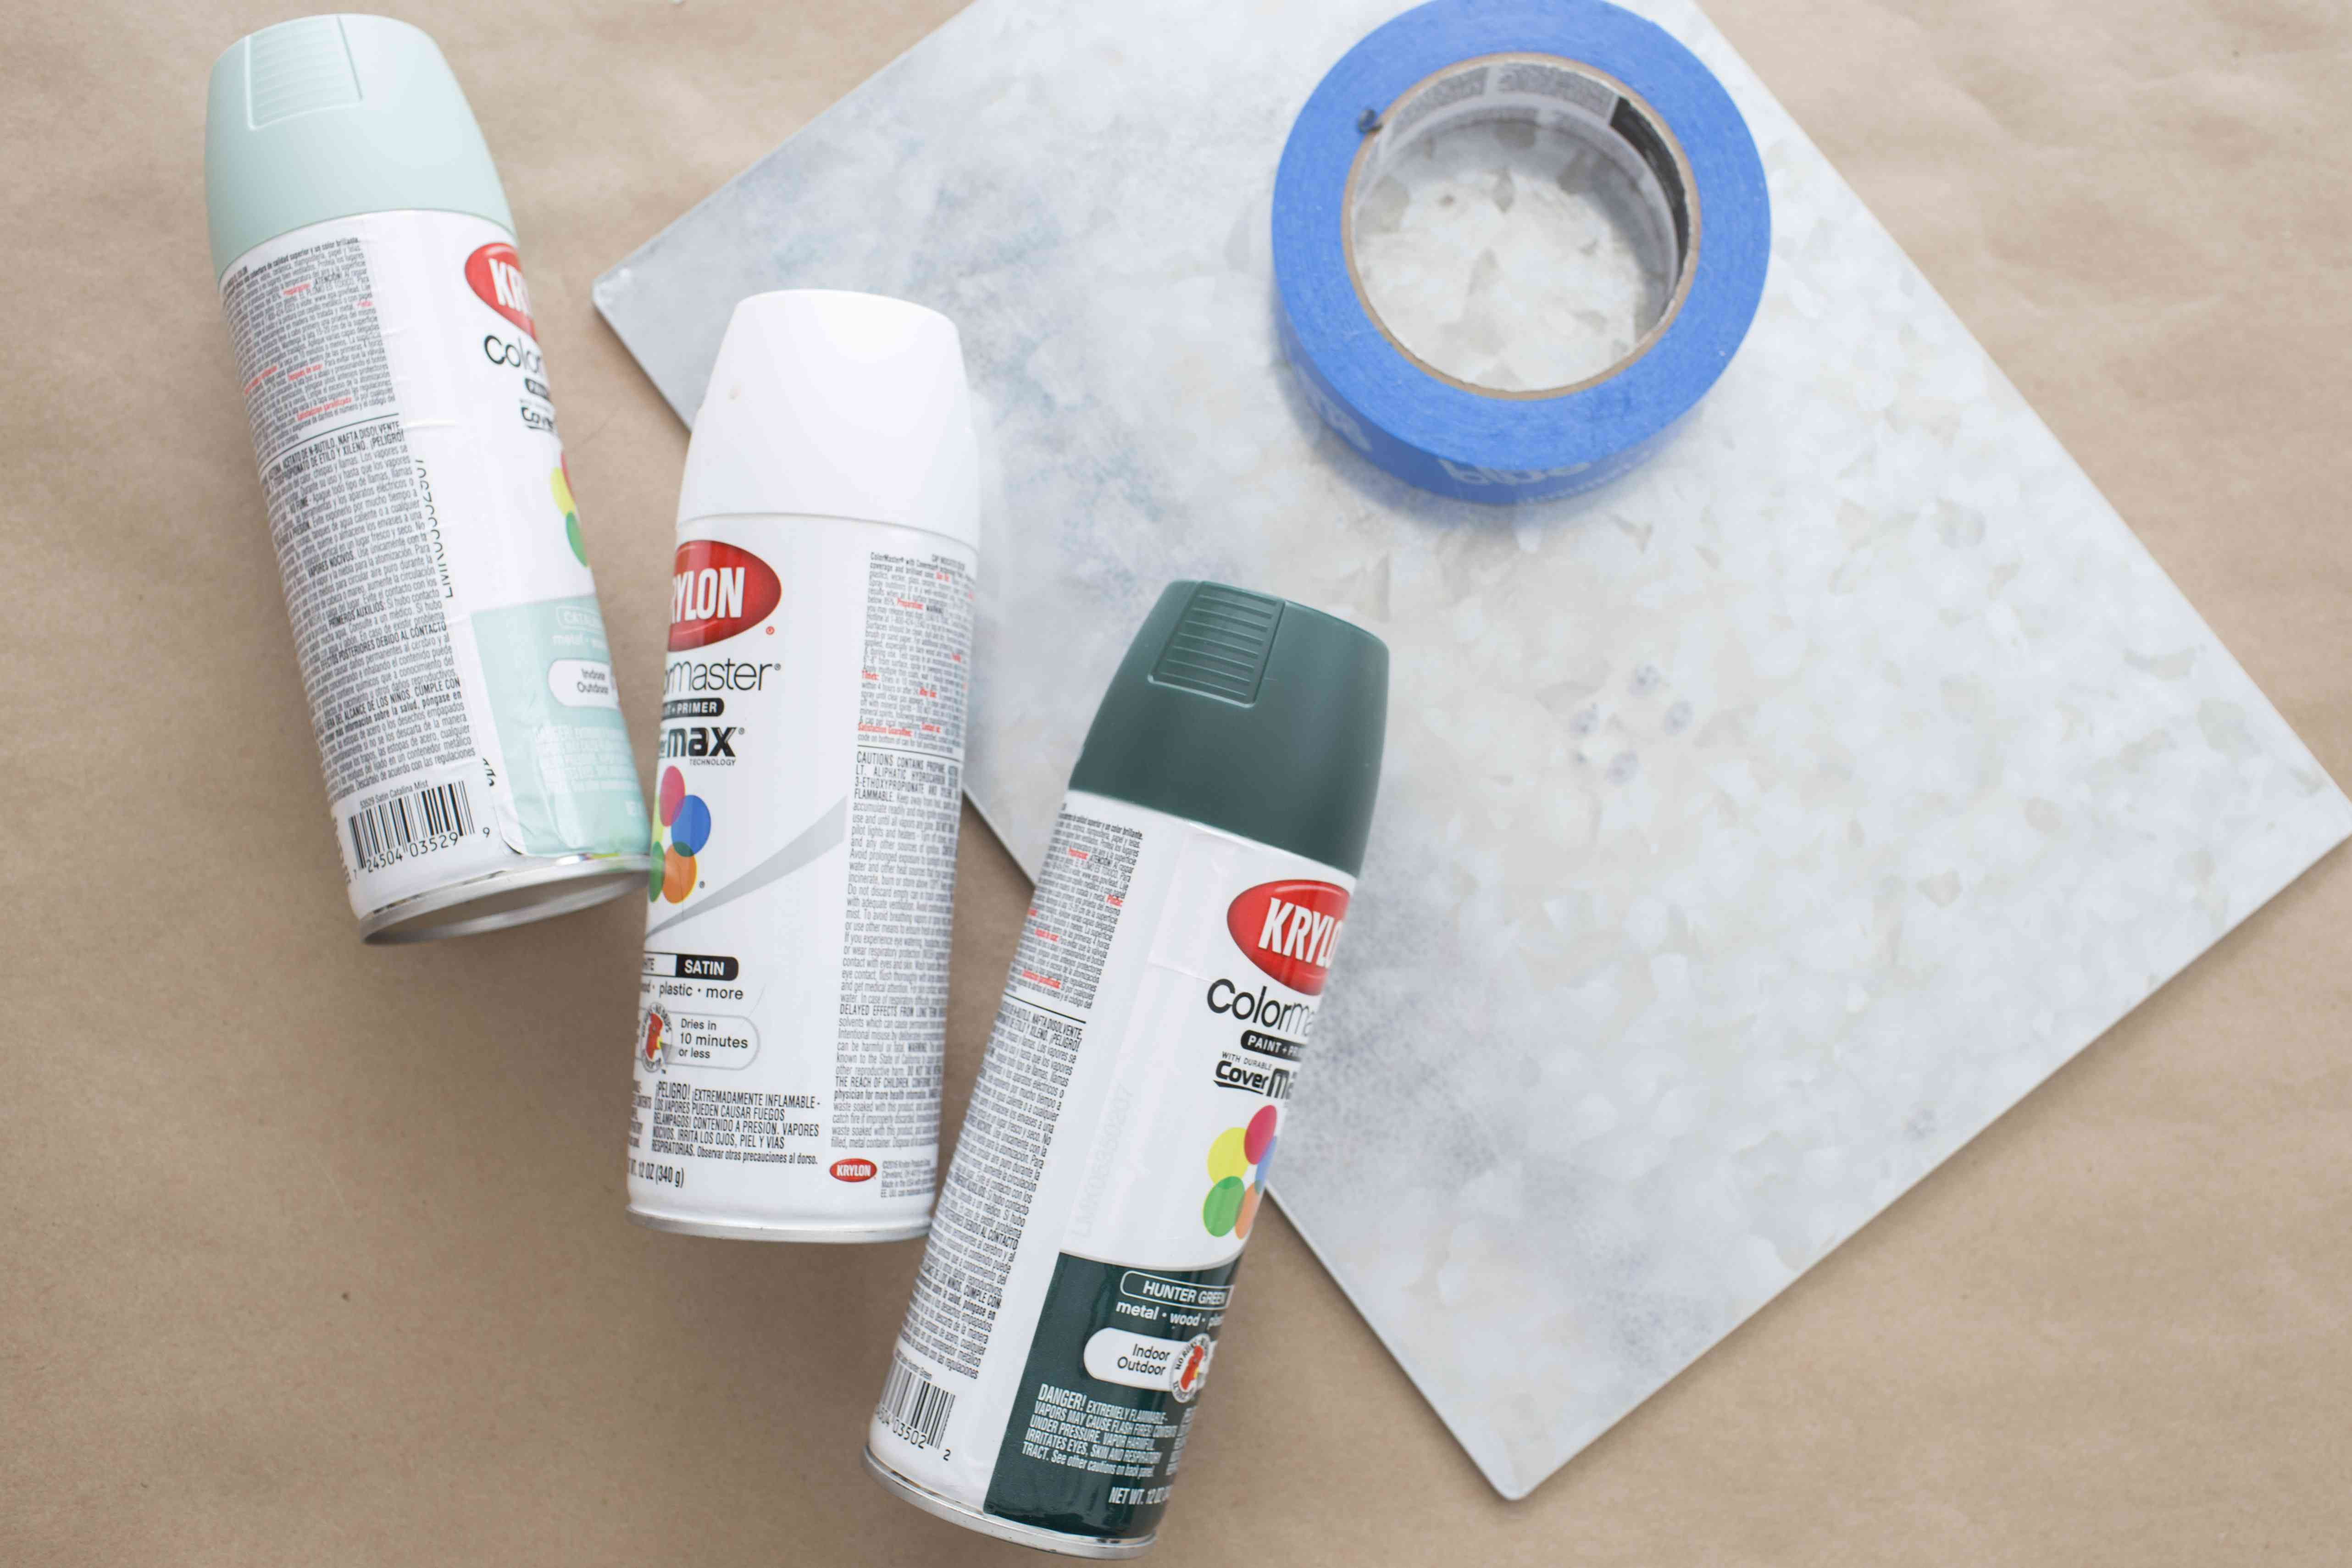 Supplies needed for making a DIY magnetic board